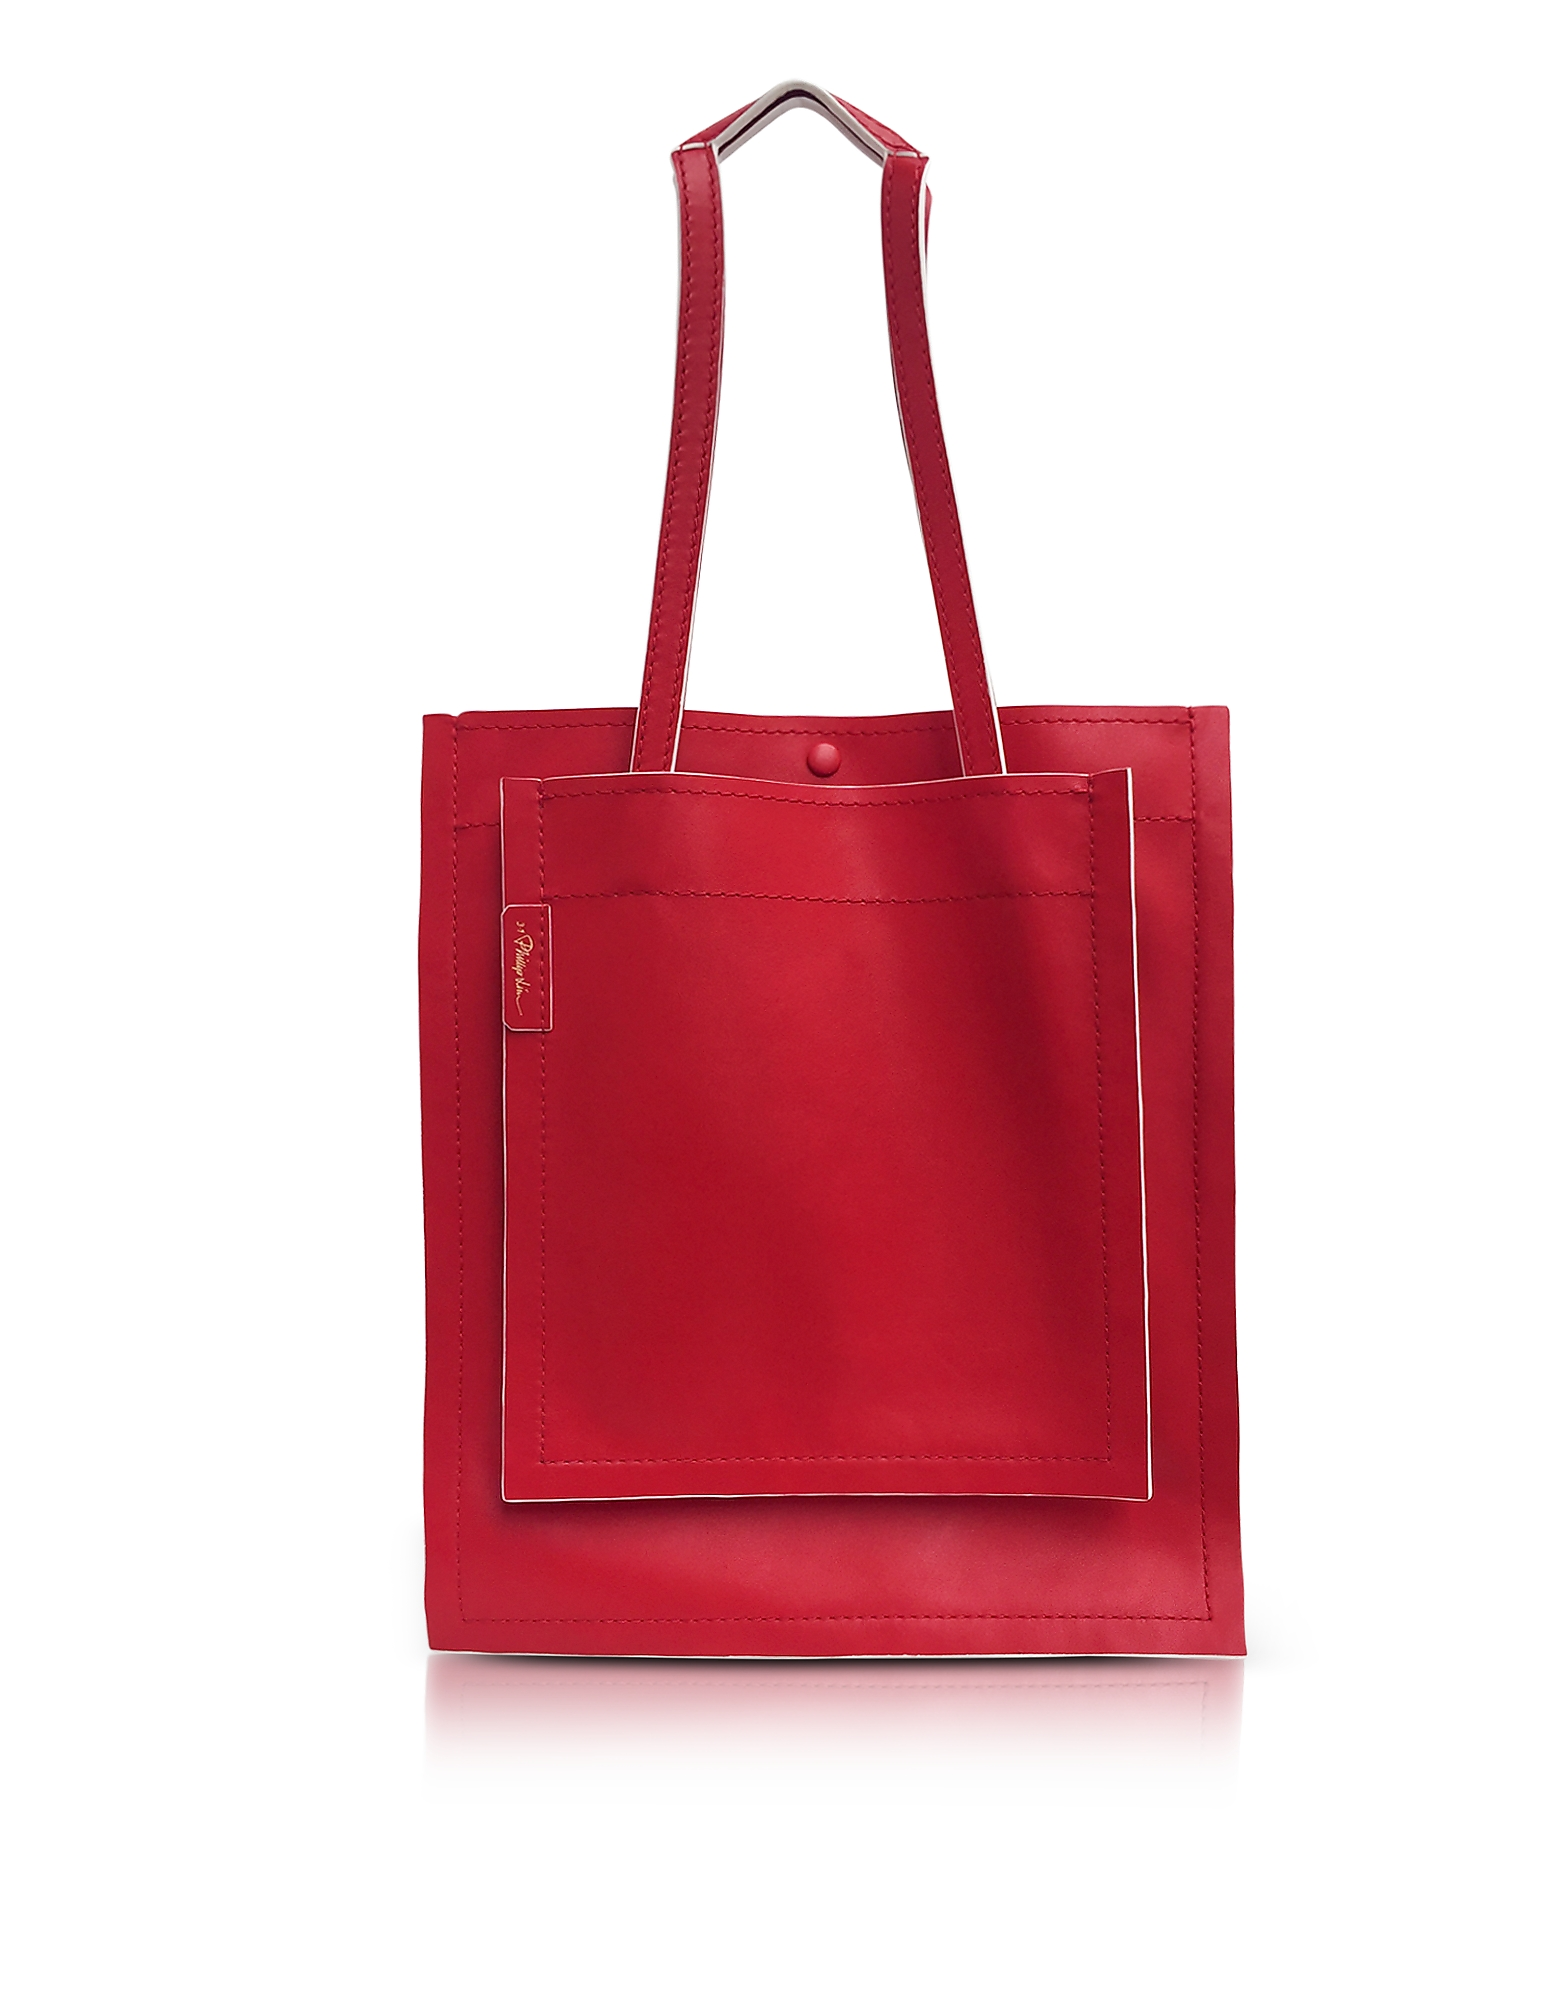 3.1 Phillip Lim Handbags, Slim Accordion Scarlet Leather Tote Bag